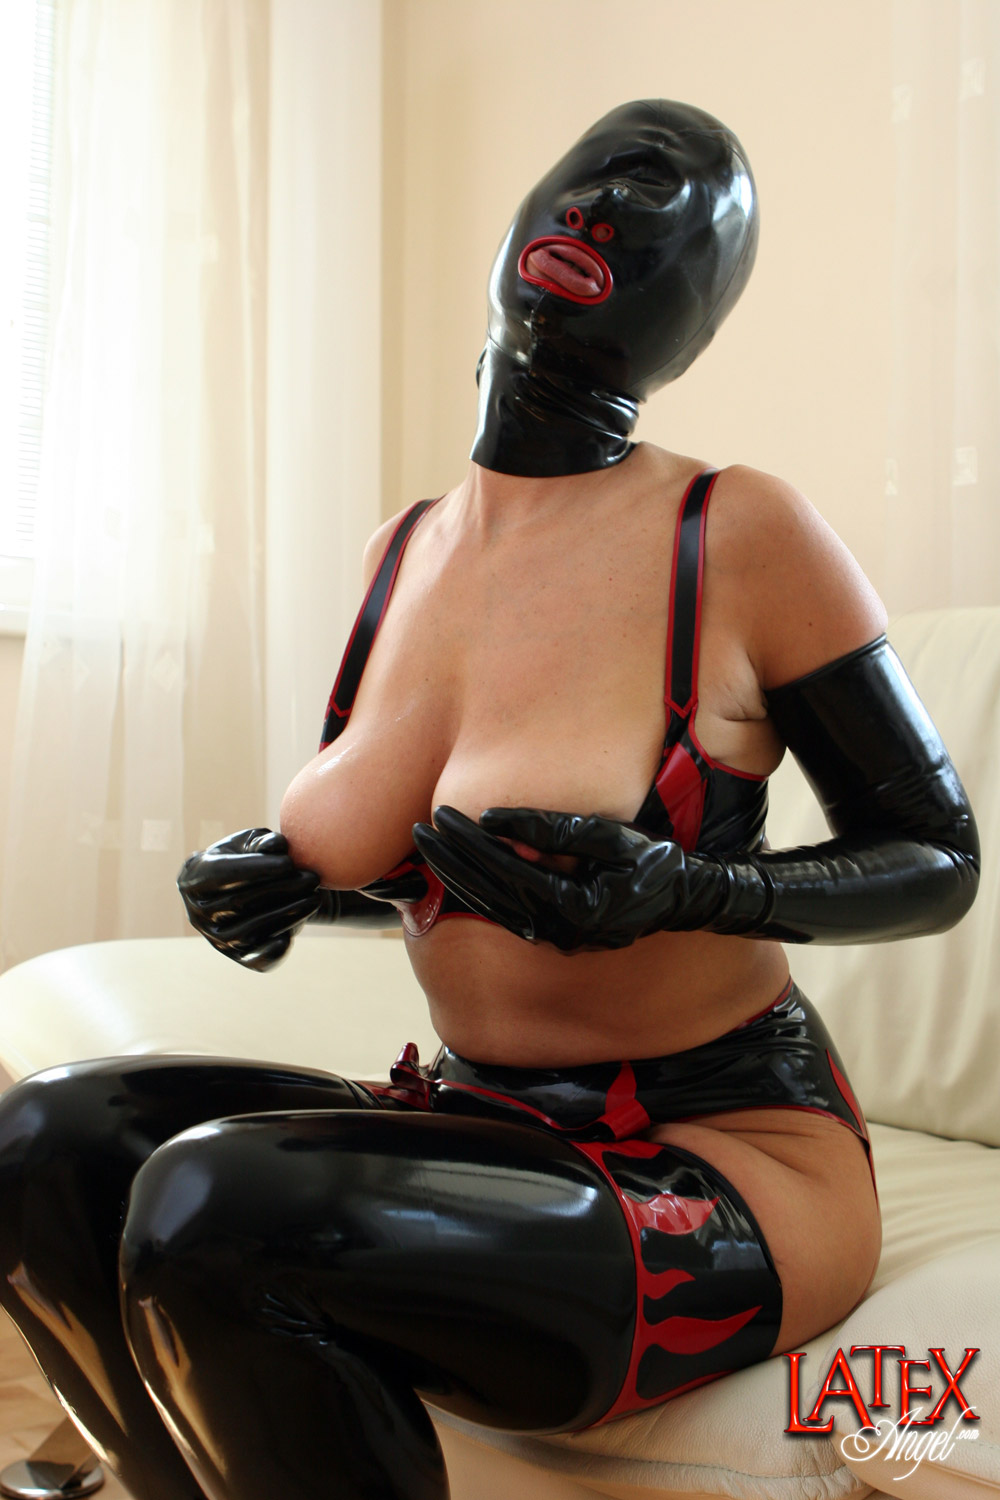 Latex angel pussy pump that would